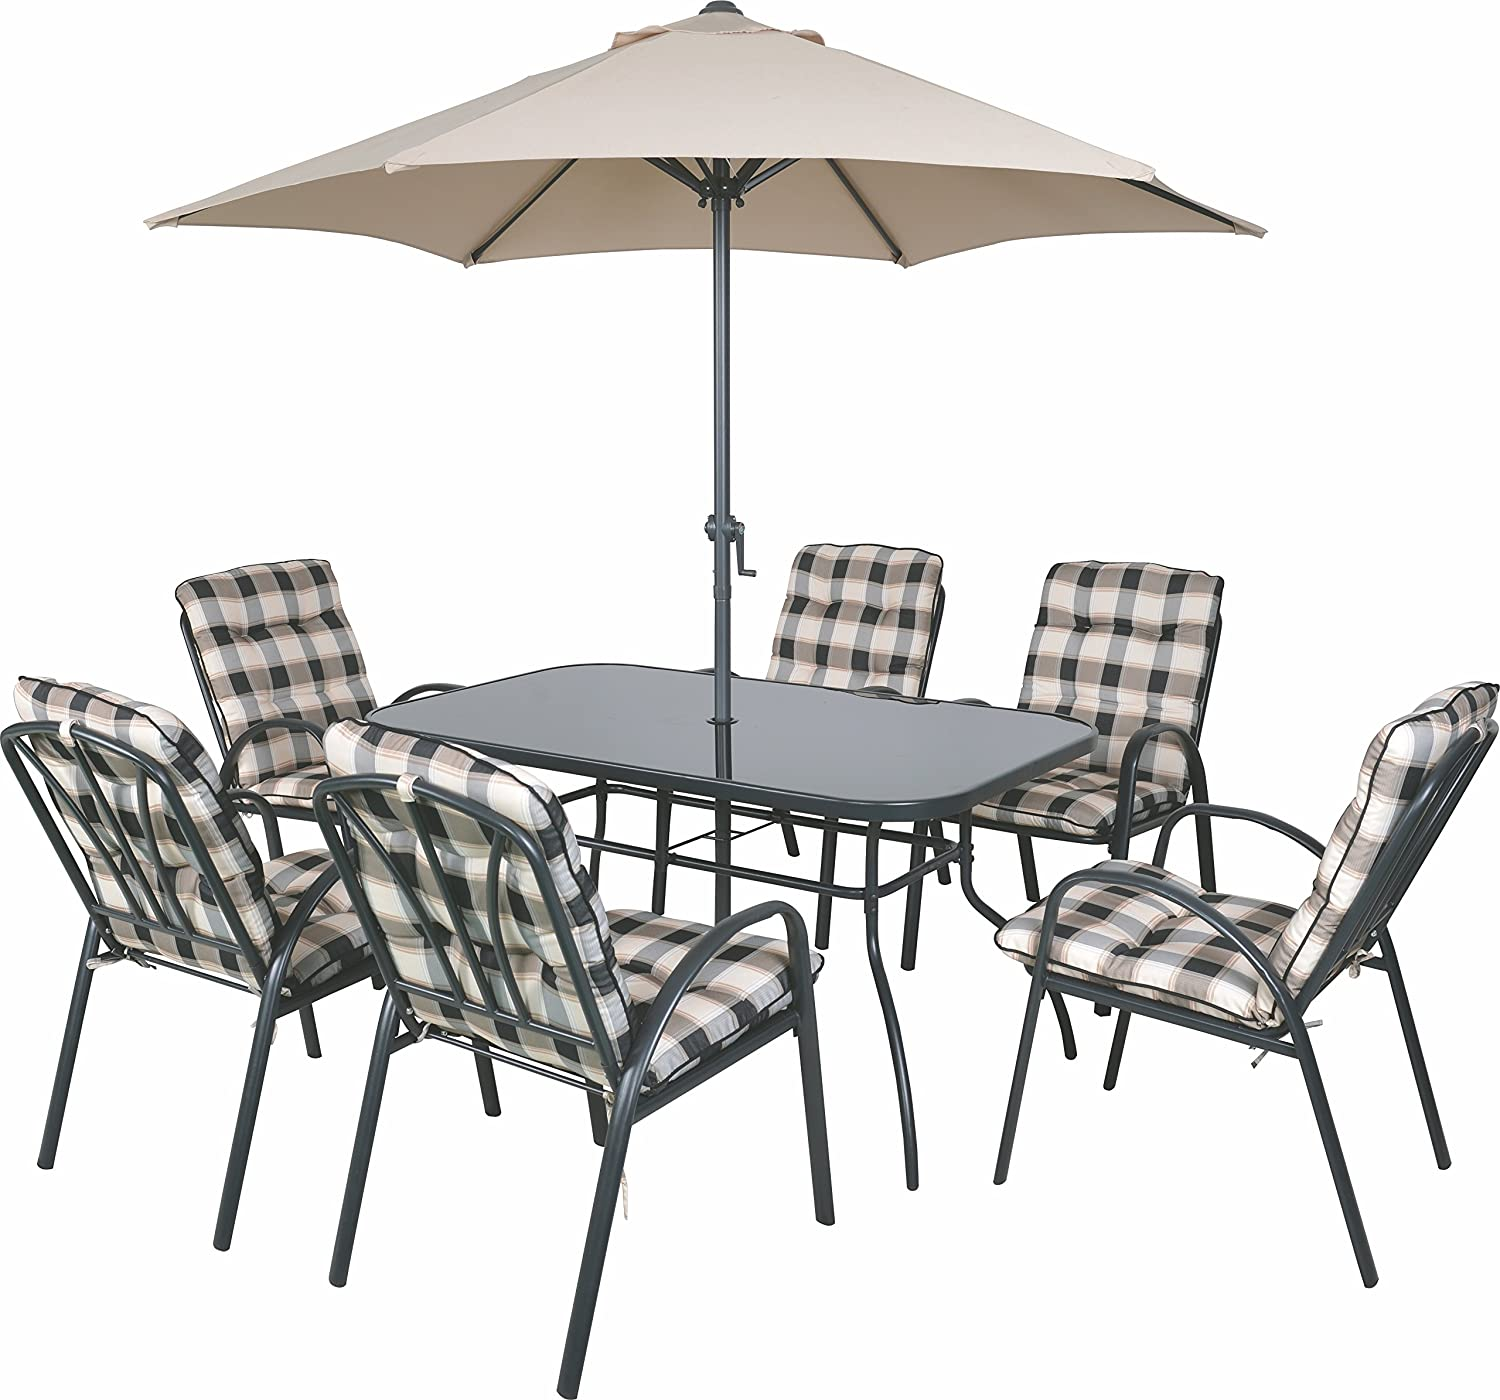 8 Seater Outdoor Garden Furniture Table Chairs & Parasol Dining Set  Cushioned